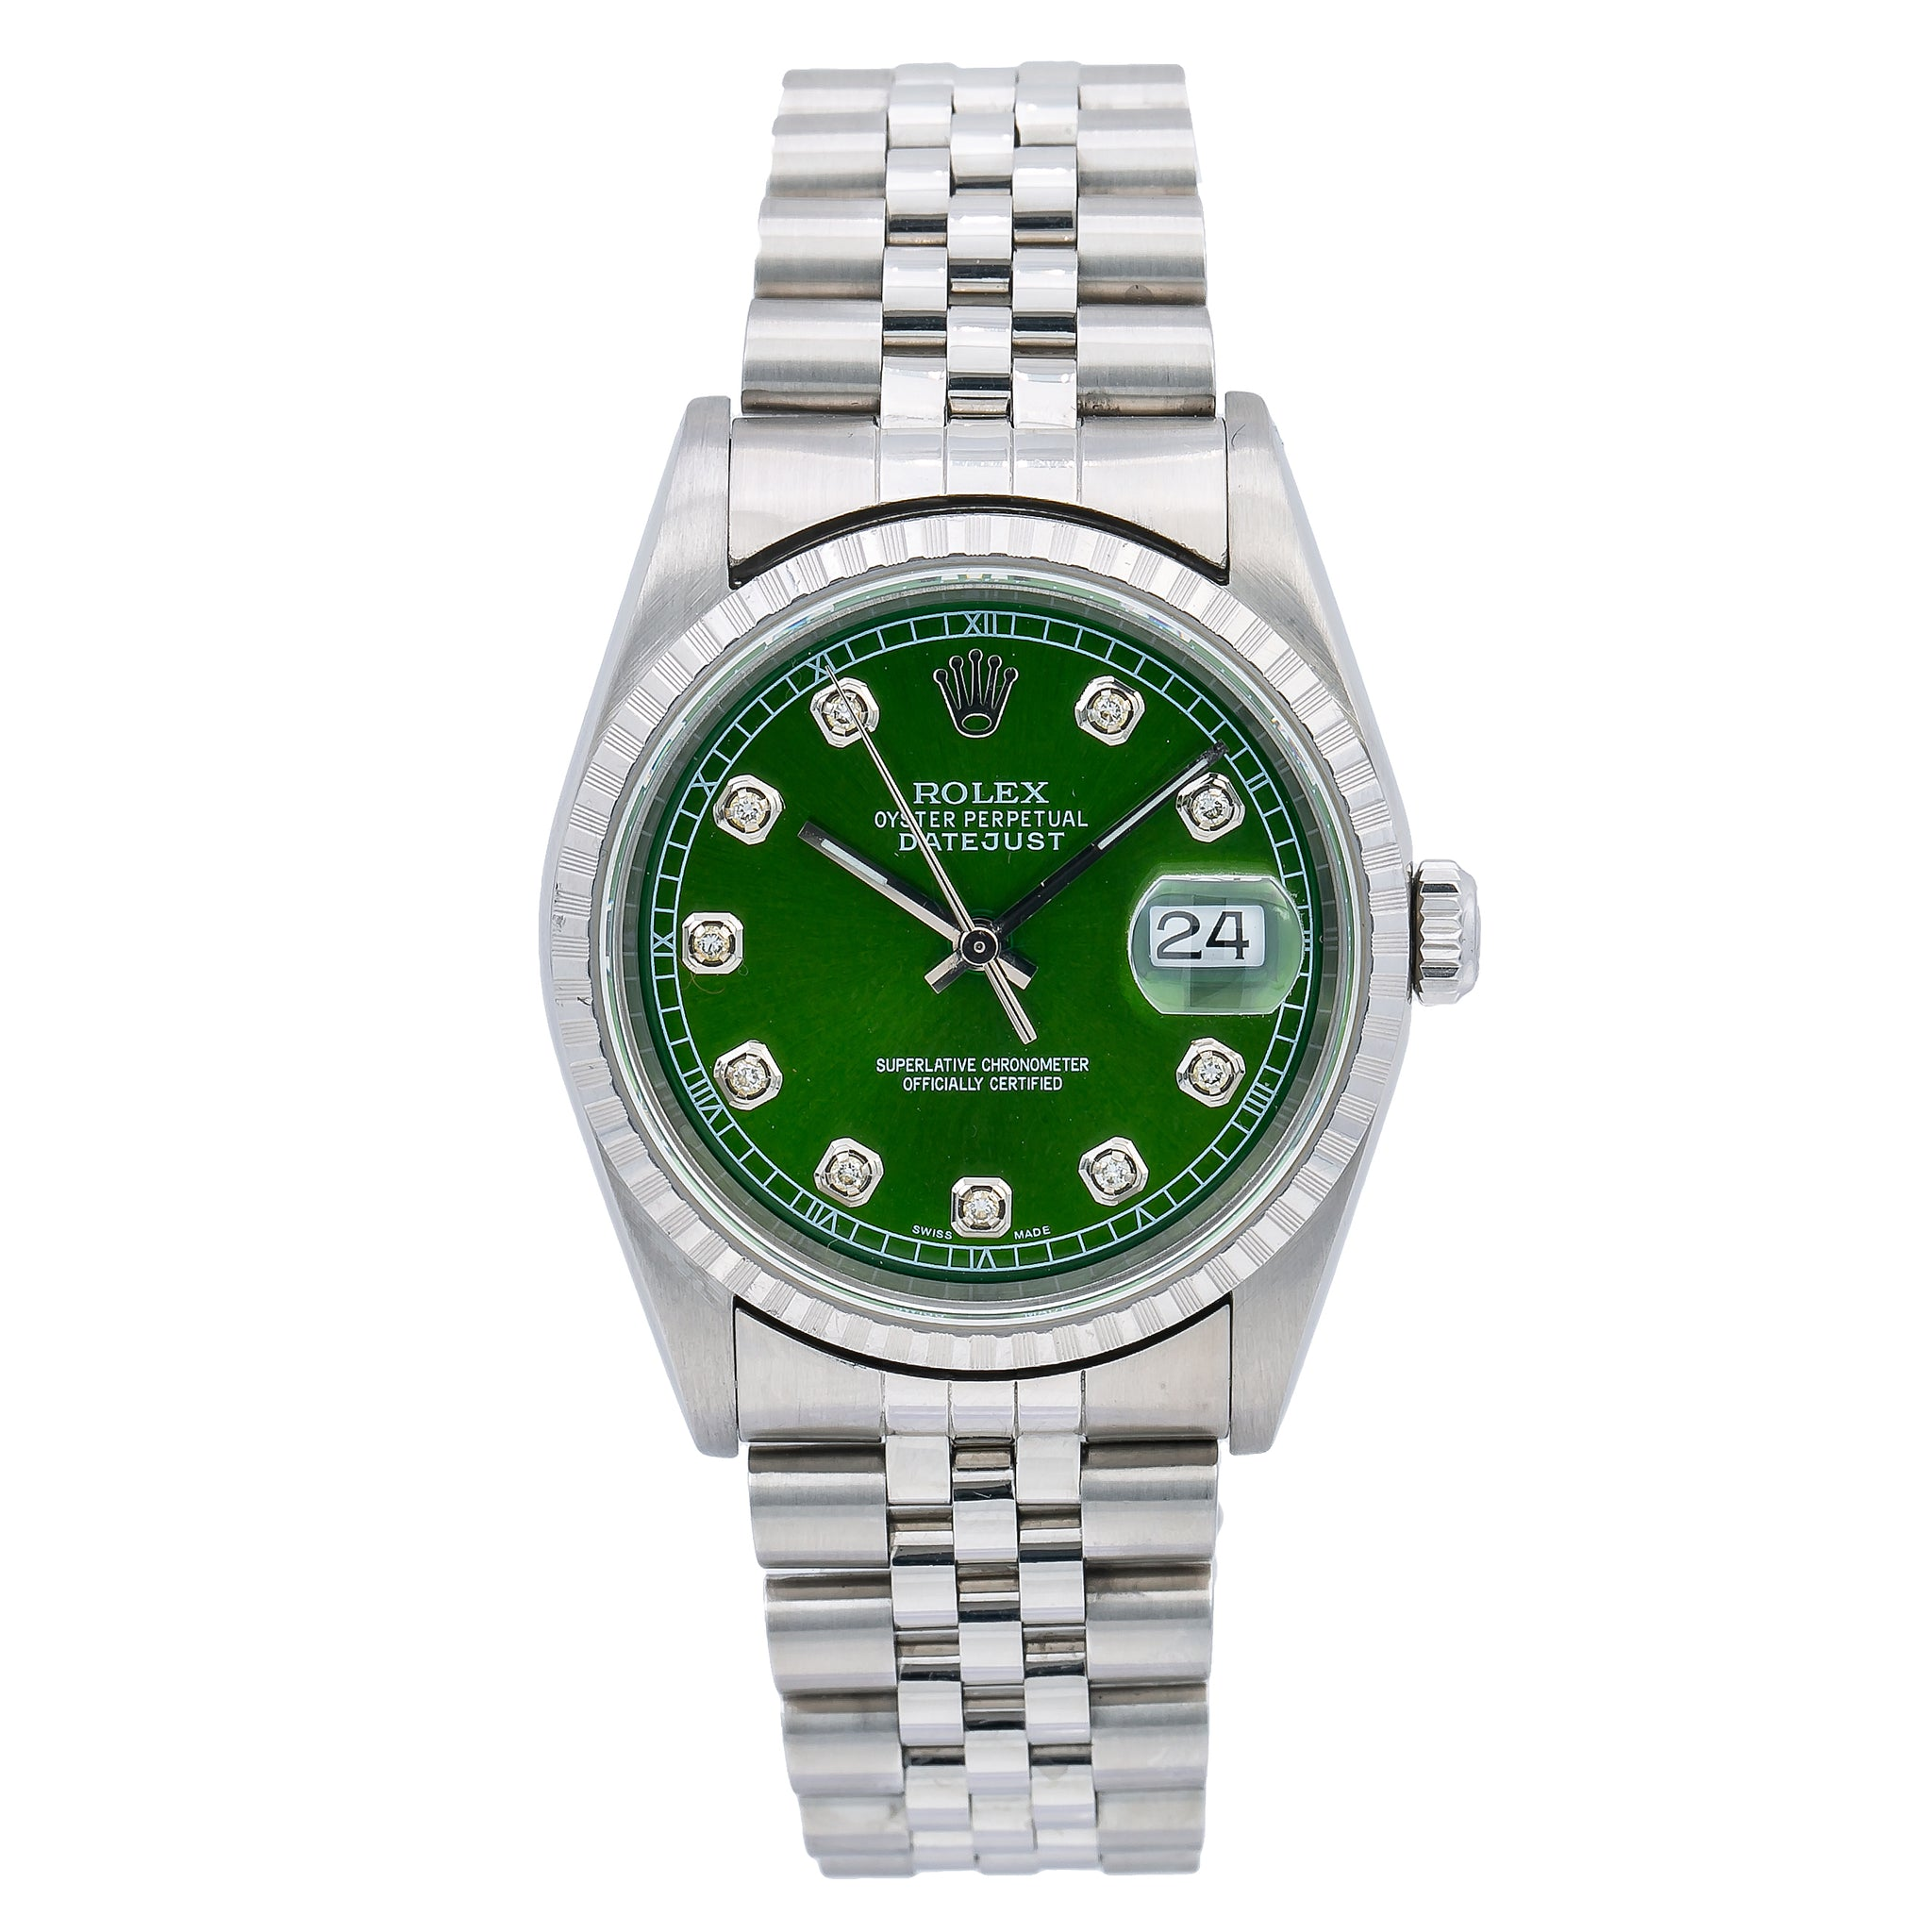 Rolex Datejust 16220 36MM Green Diamond Dial With Stainless Steel Jubilee Bracelet